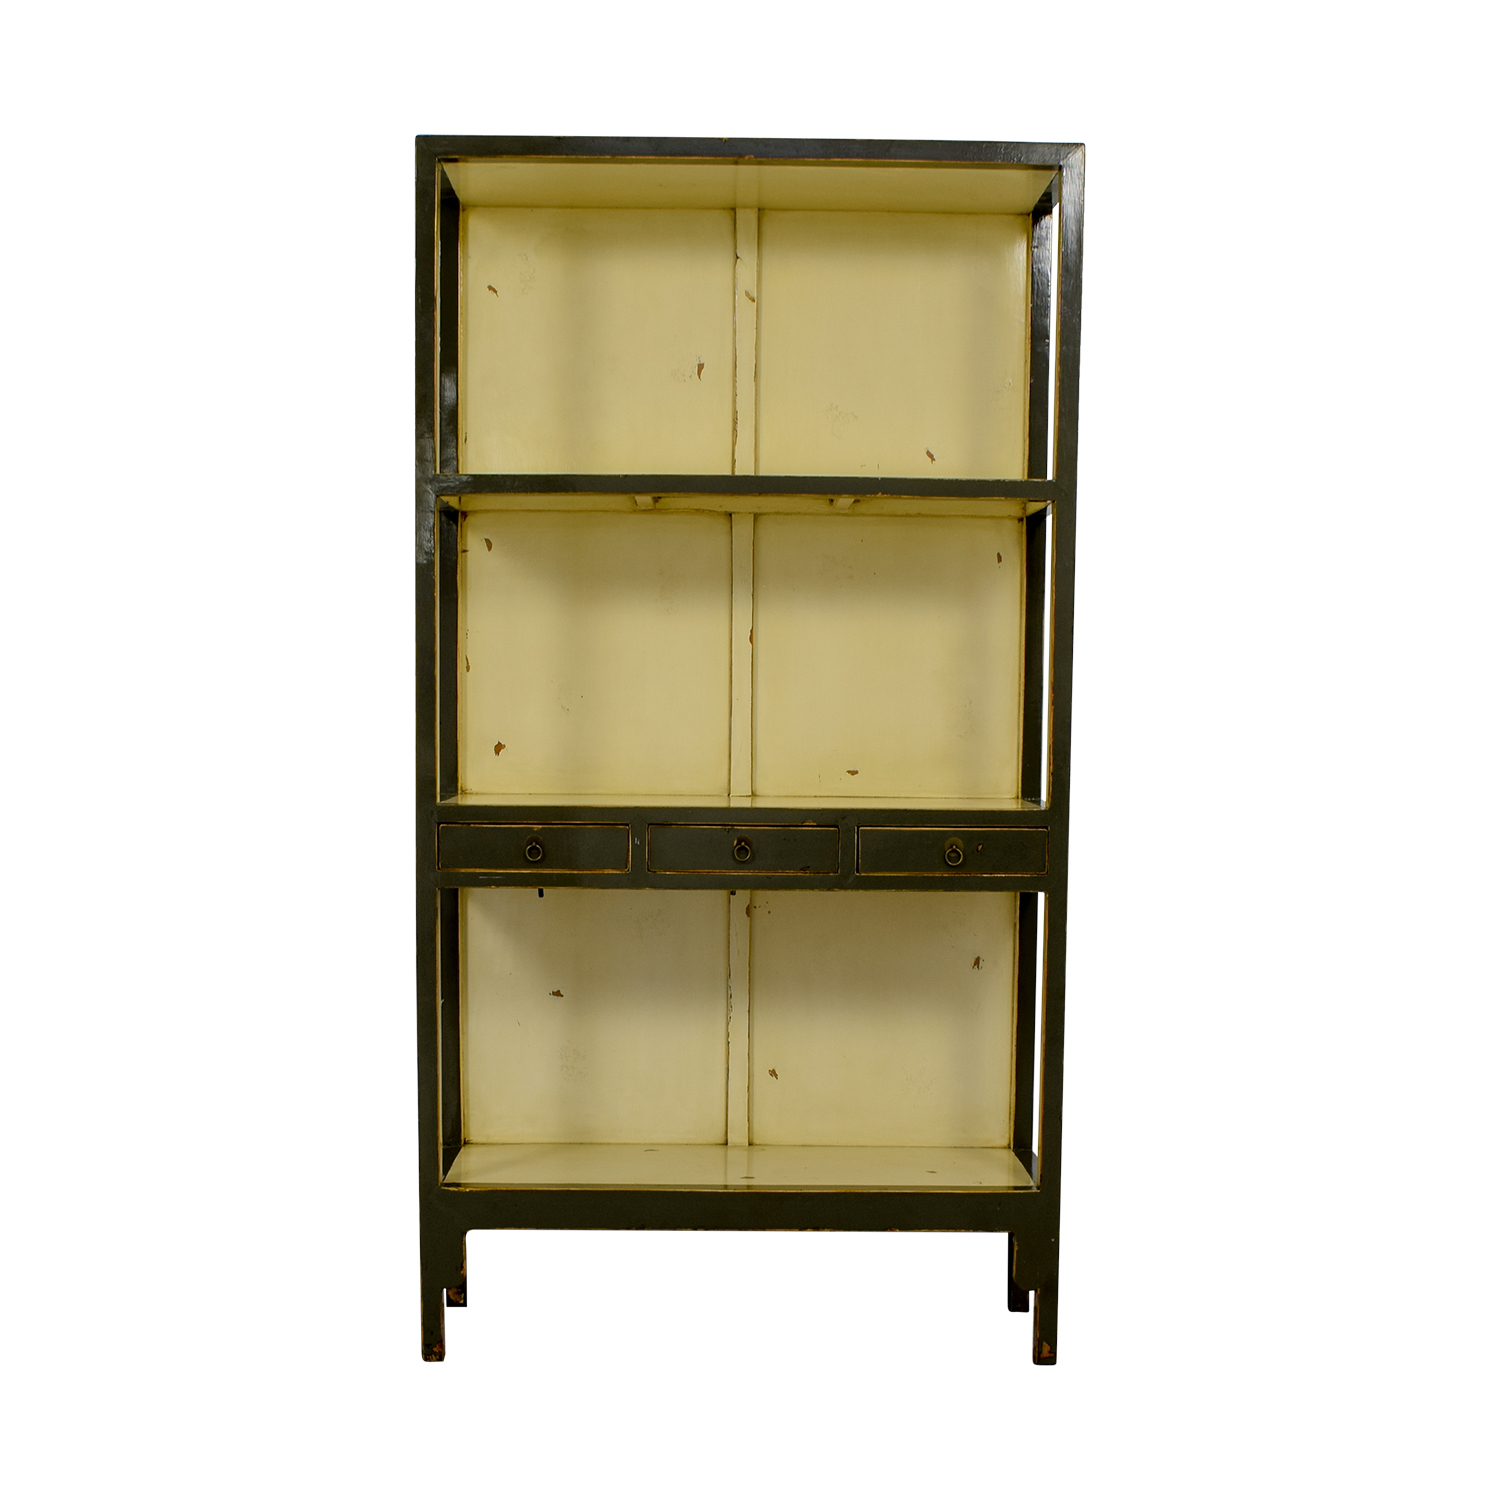 Horchow Horchow Distressed Decorative Shelving discount